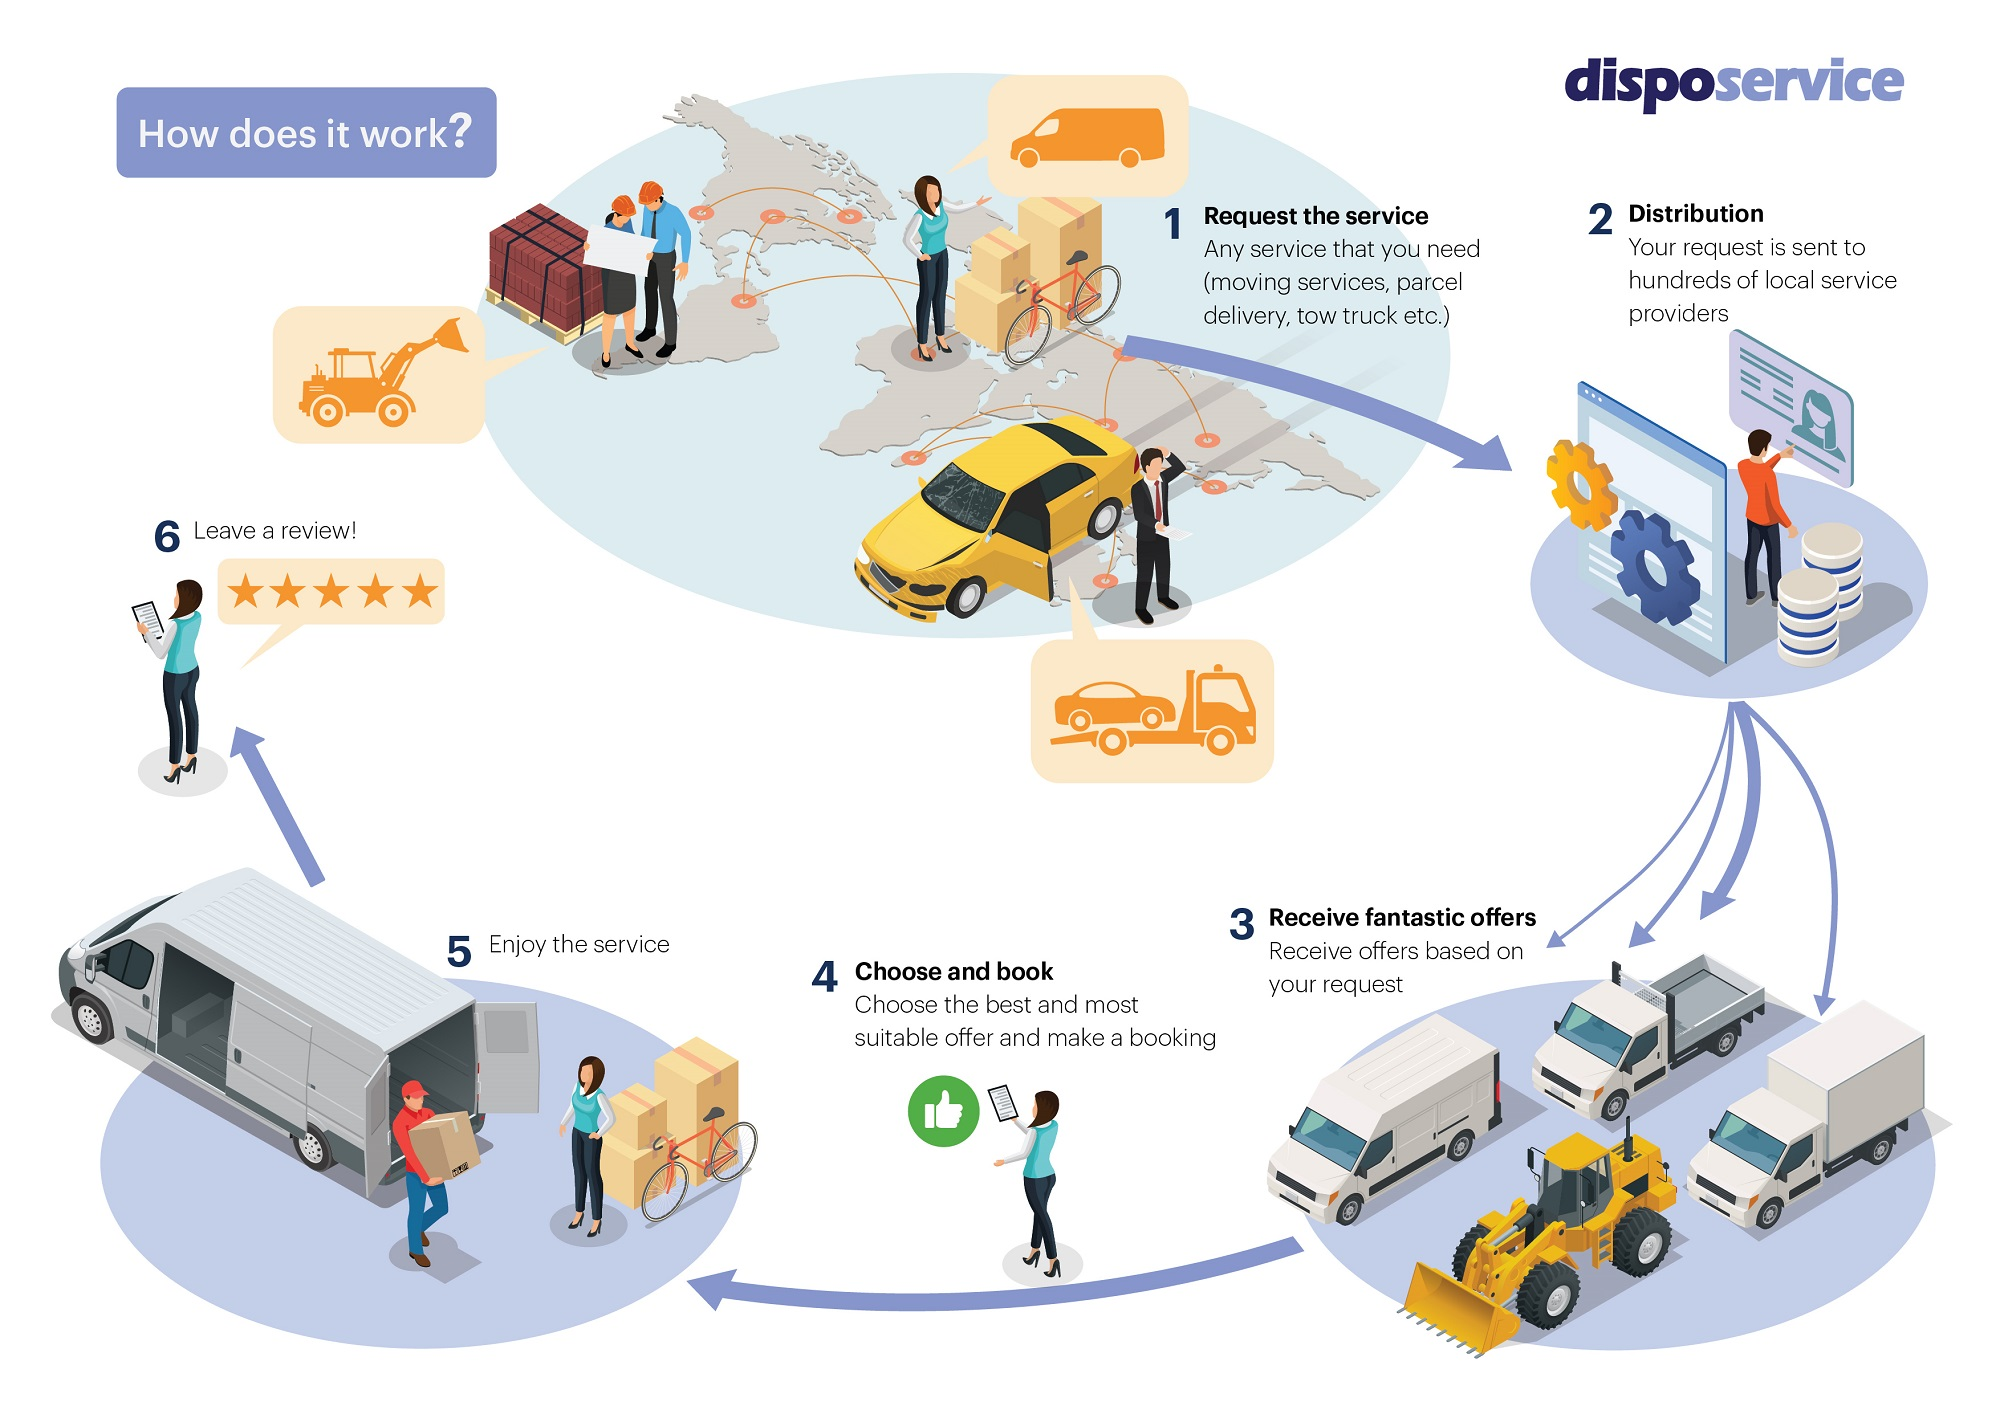 DispoService - Delivery services at your disposal